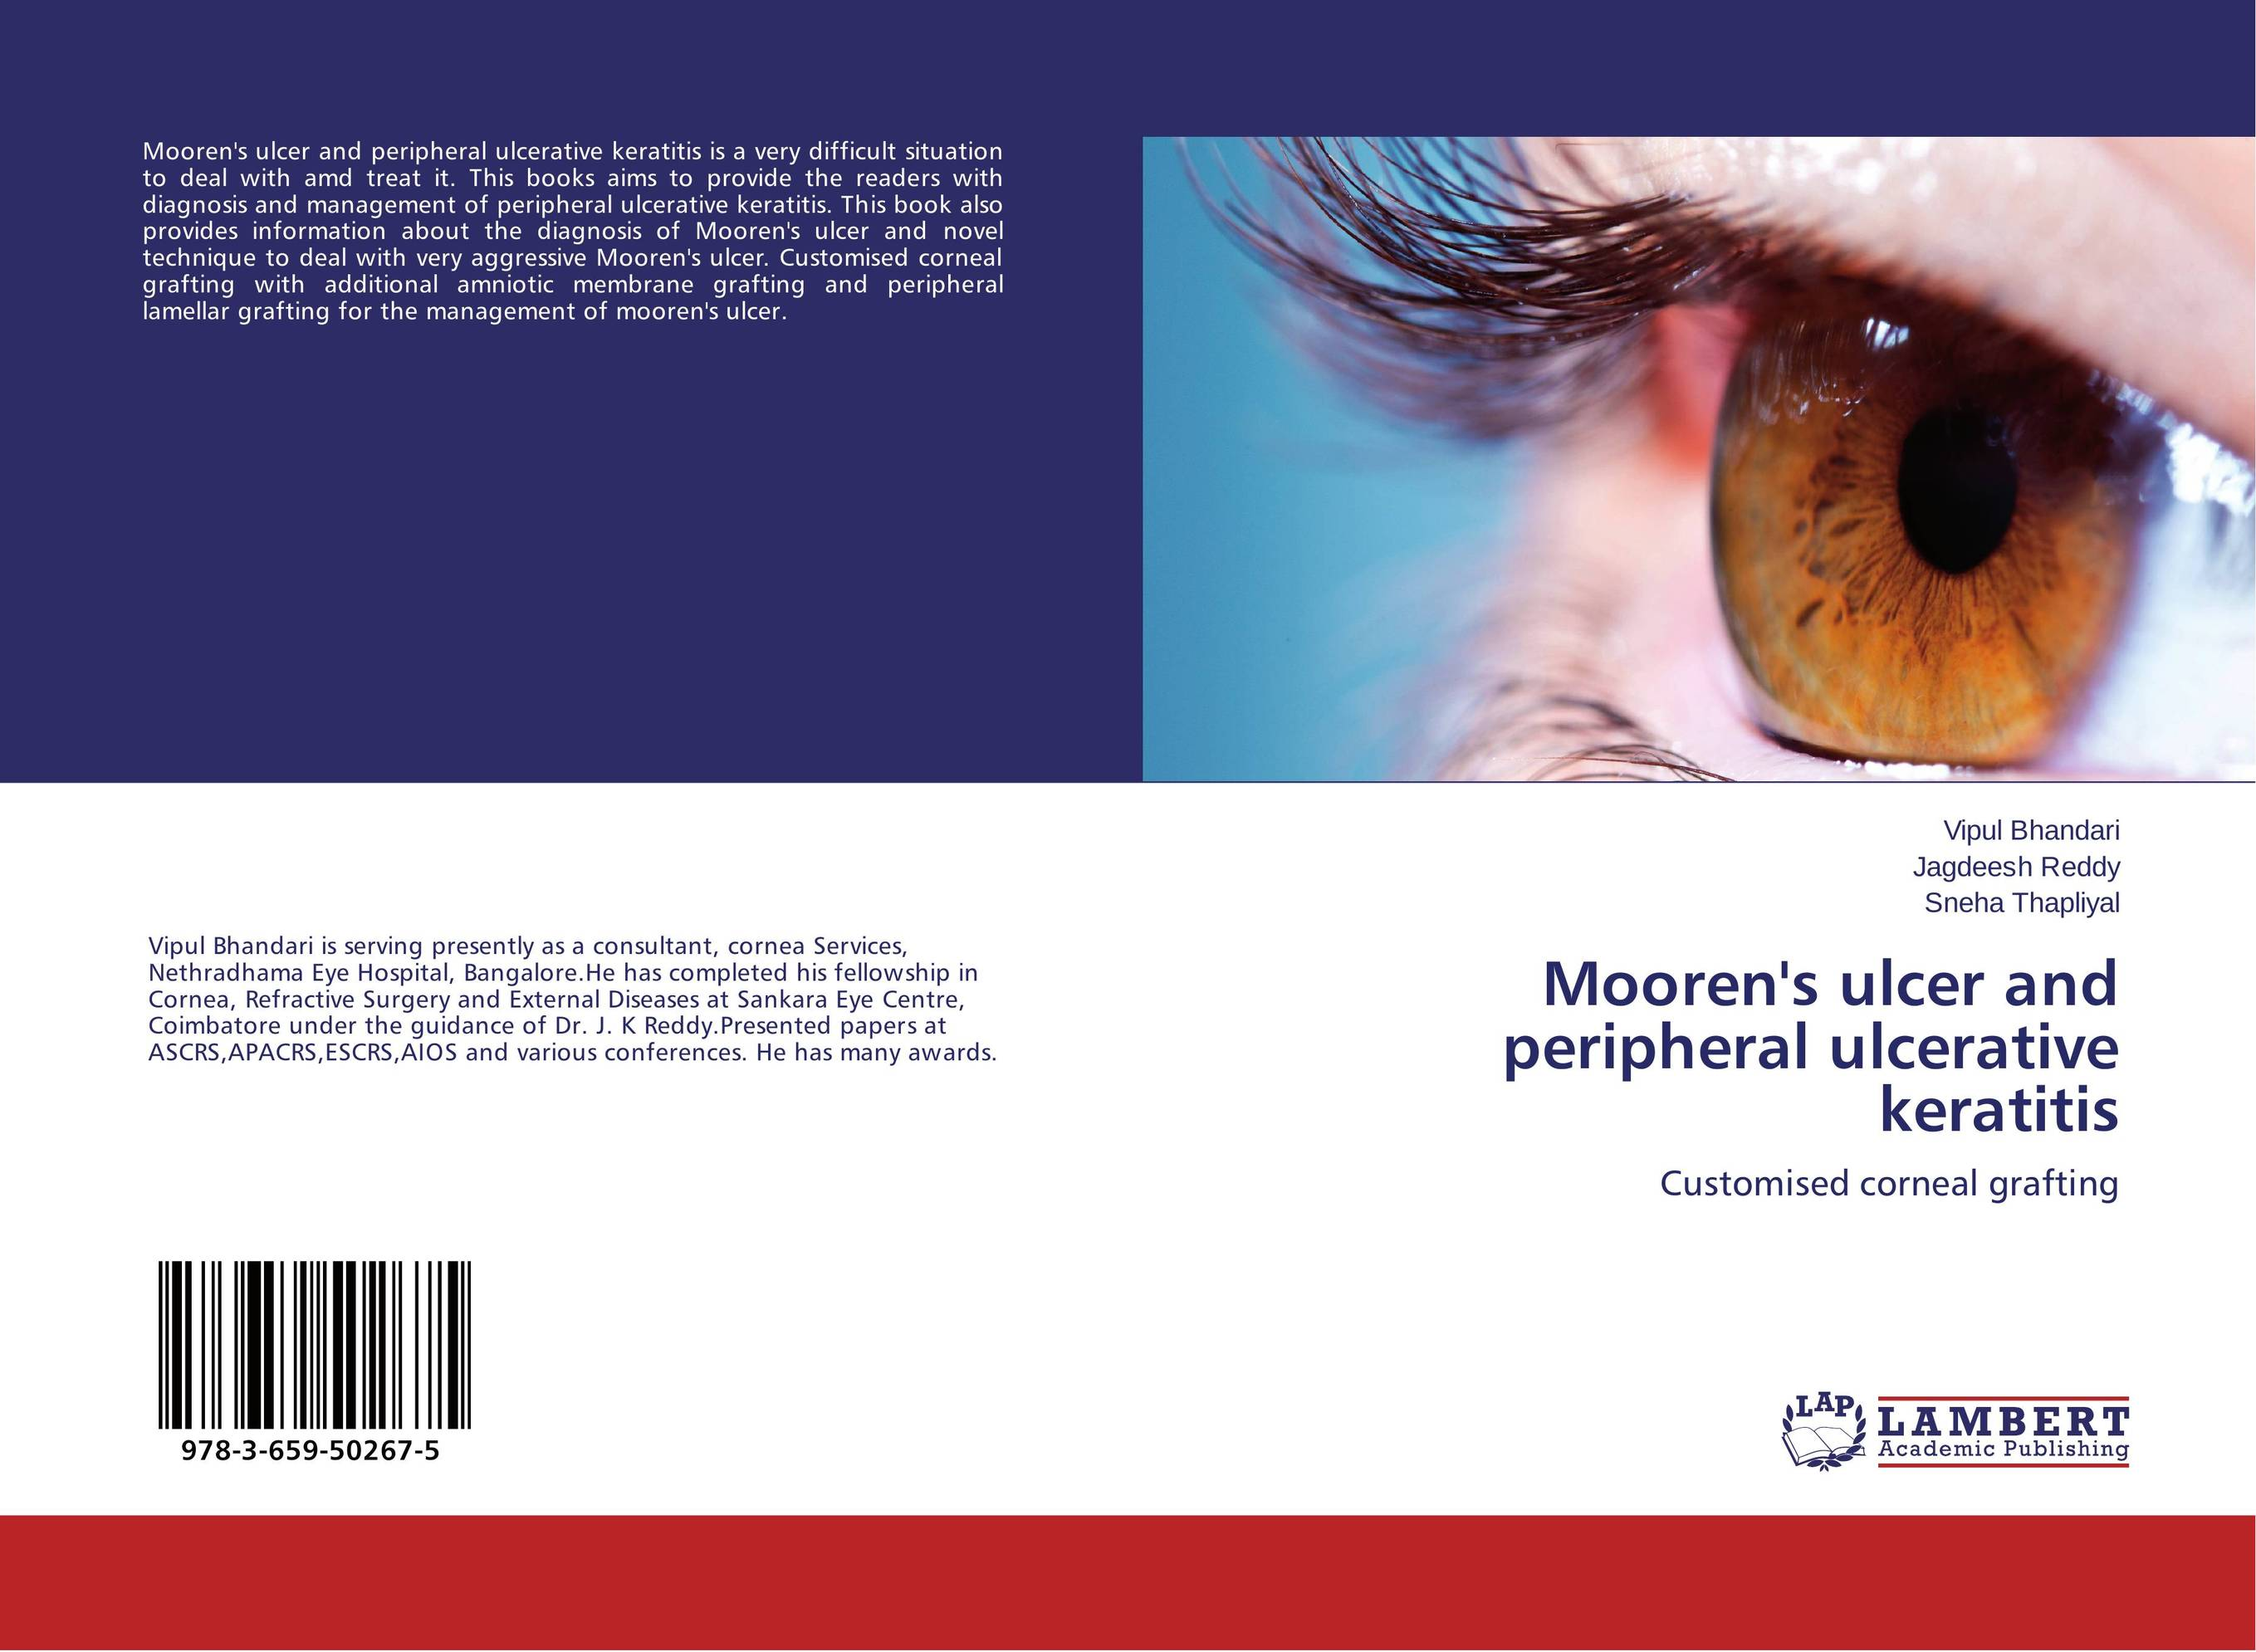 Mooren's ulcer and peripheral ulcerative keratitis mooren s ulcer and peripheral ulcerative keratitis